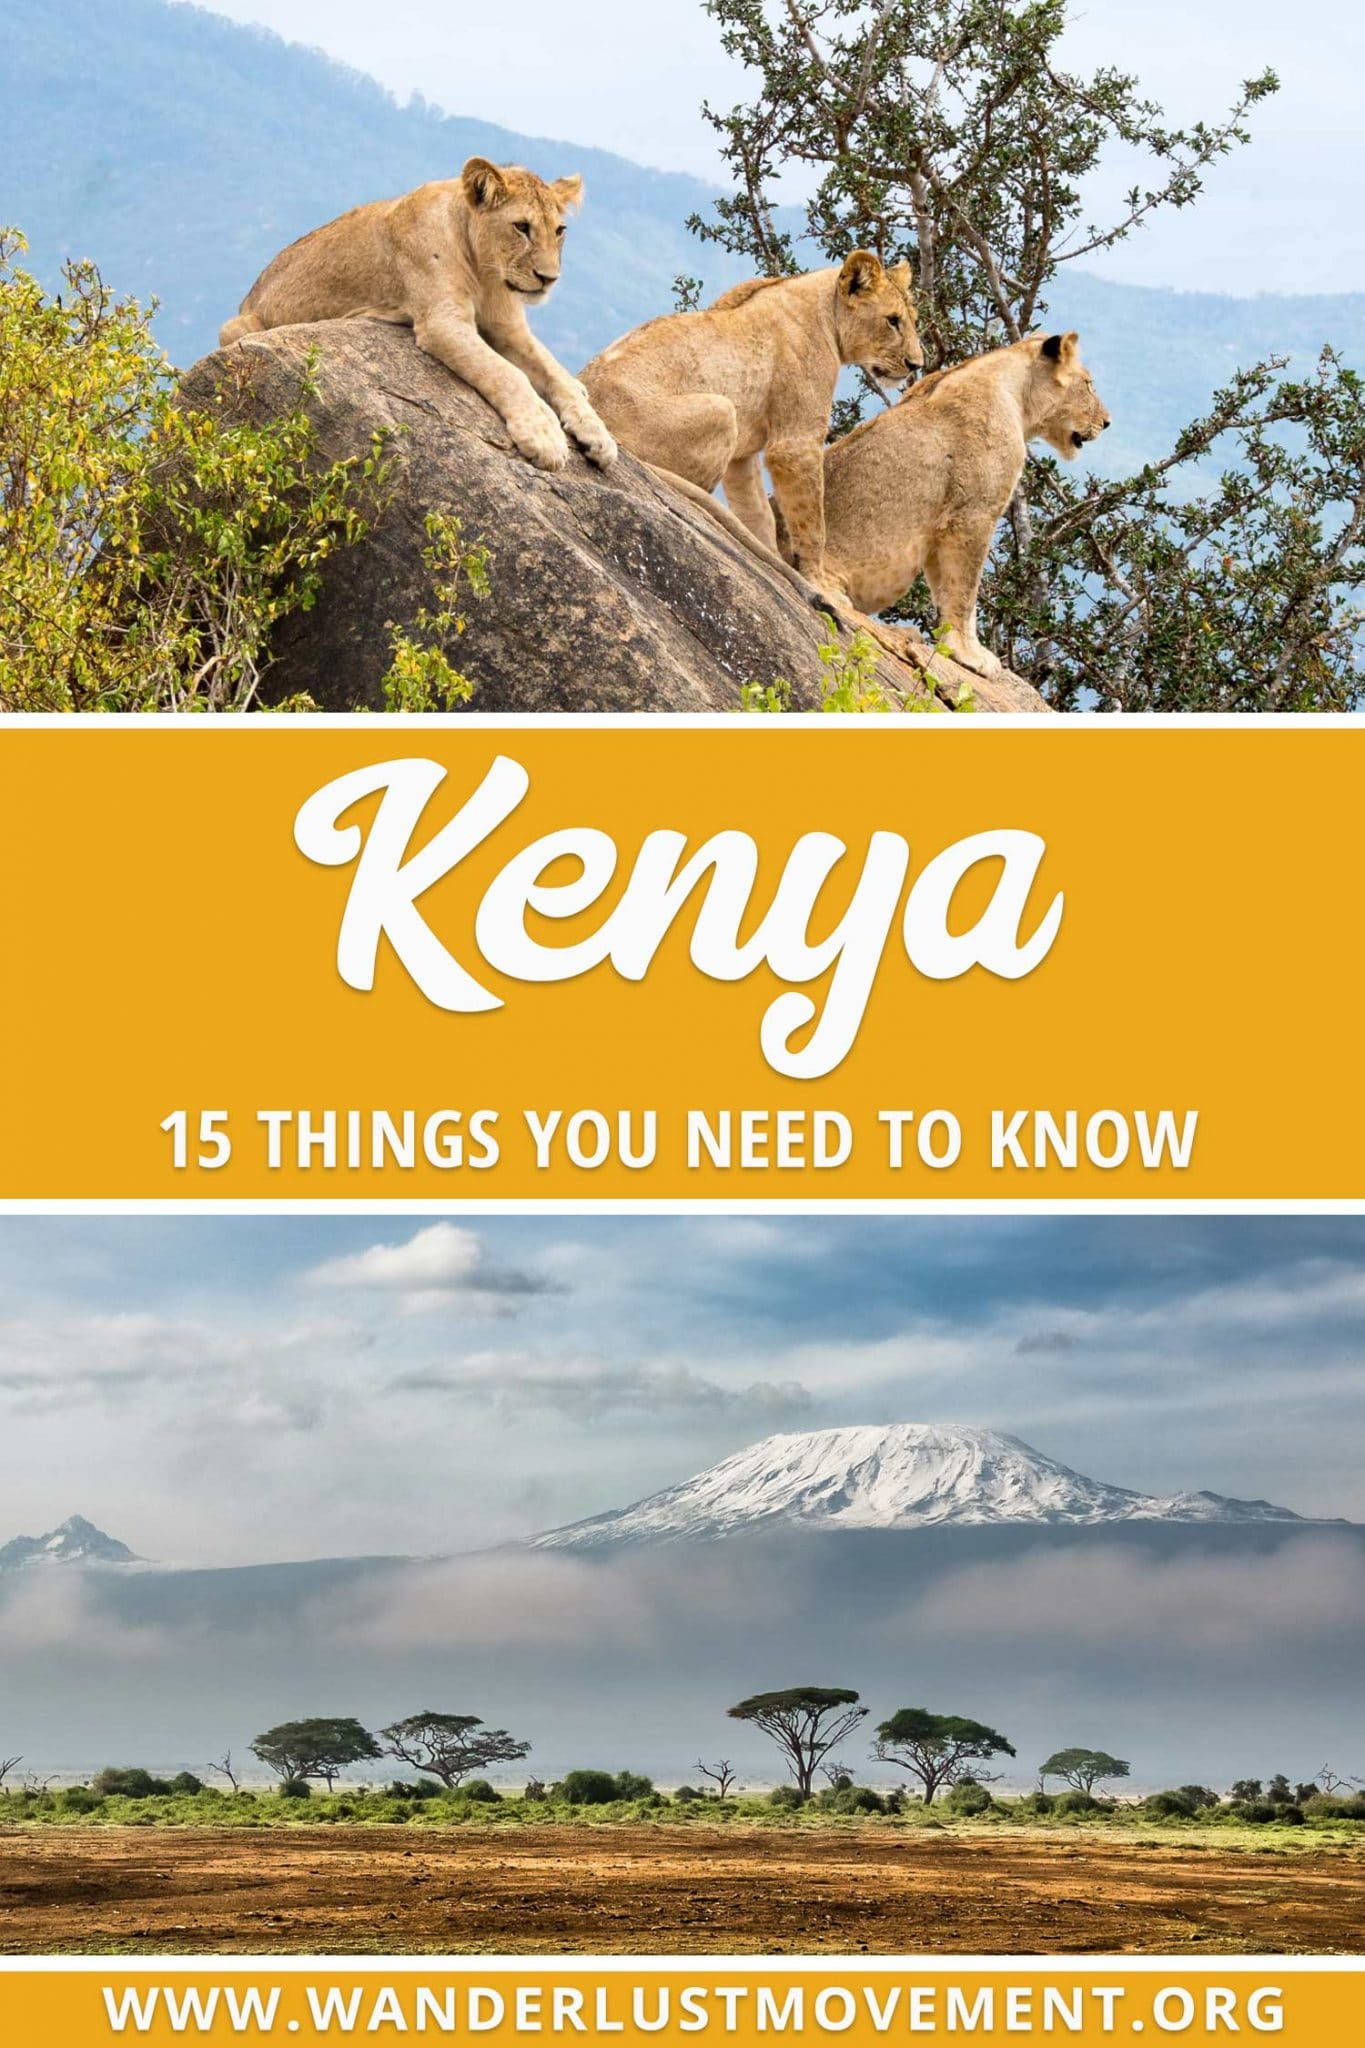 Travel to Kenya: 15 Useful Things To Know Before You Go